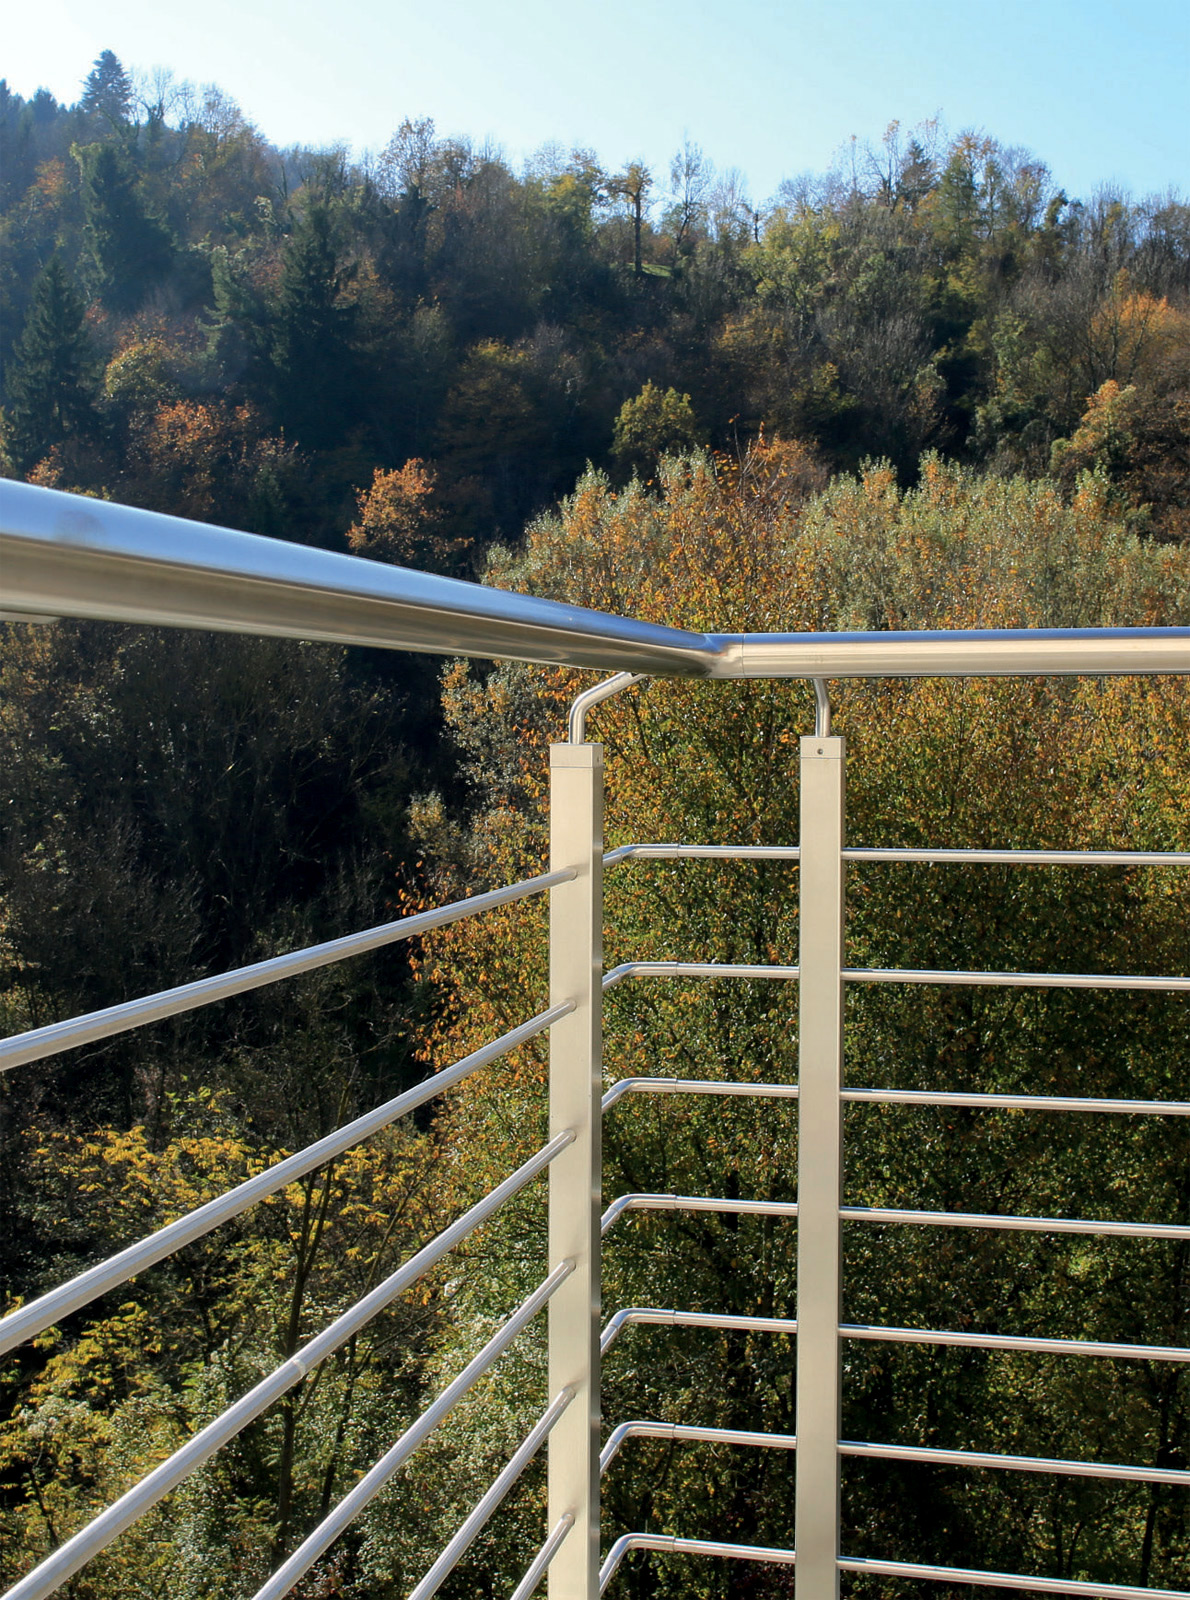 TRENTO - Stainless Steel Railing with Tube Square Baluster